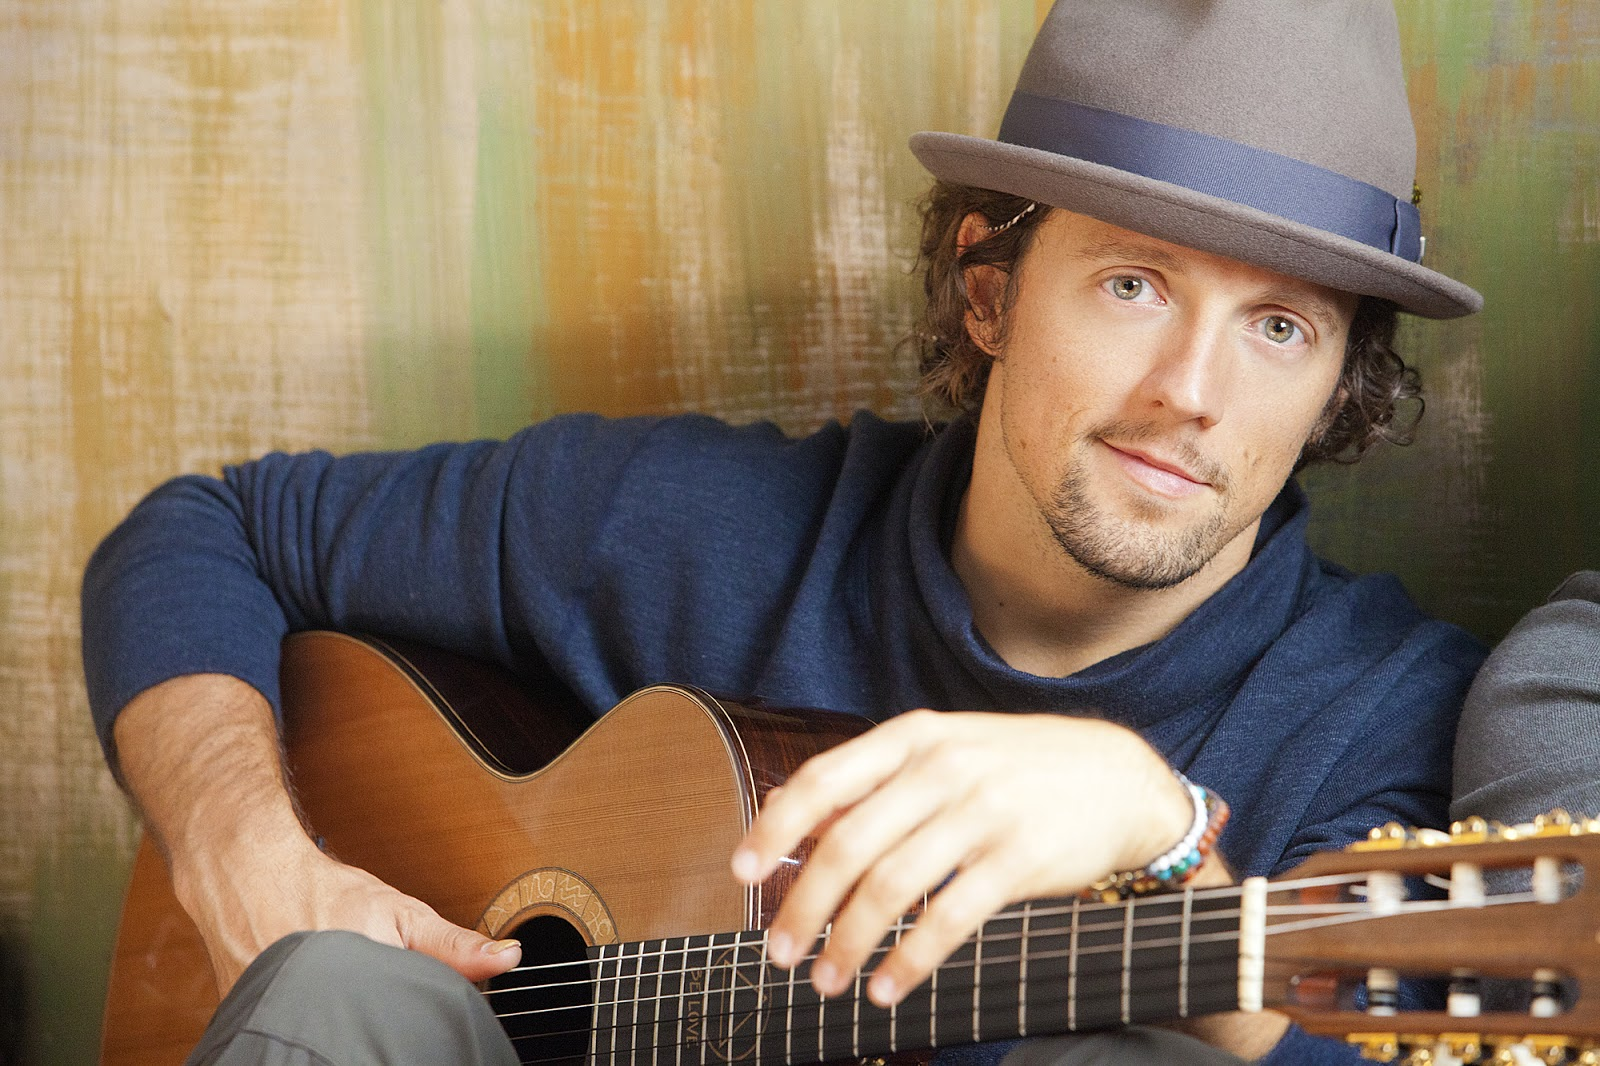 http://lirik90.blogspot.com/2014/07/3-things-lyrics-jason-mraz.html